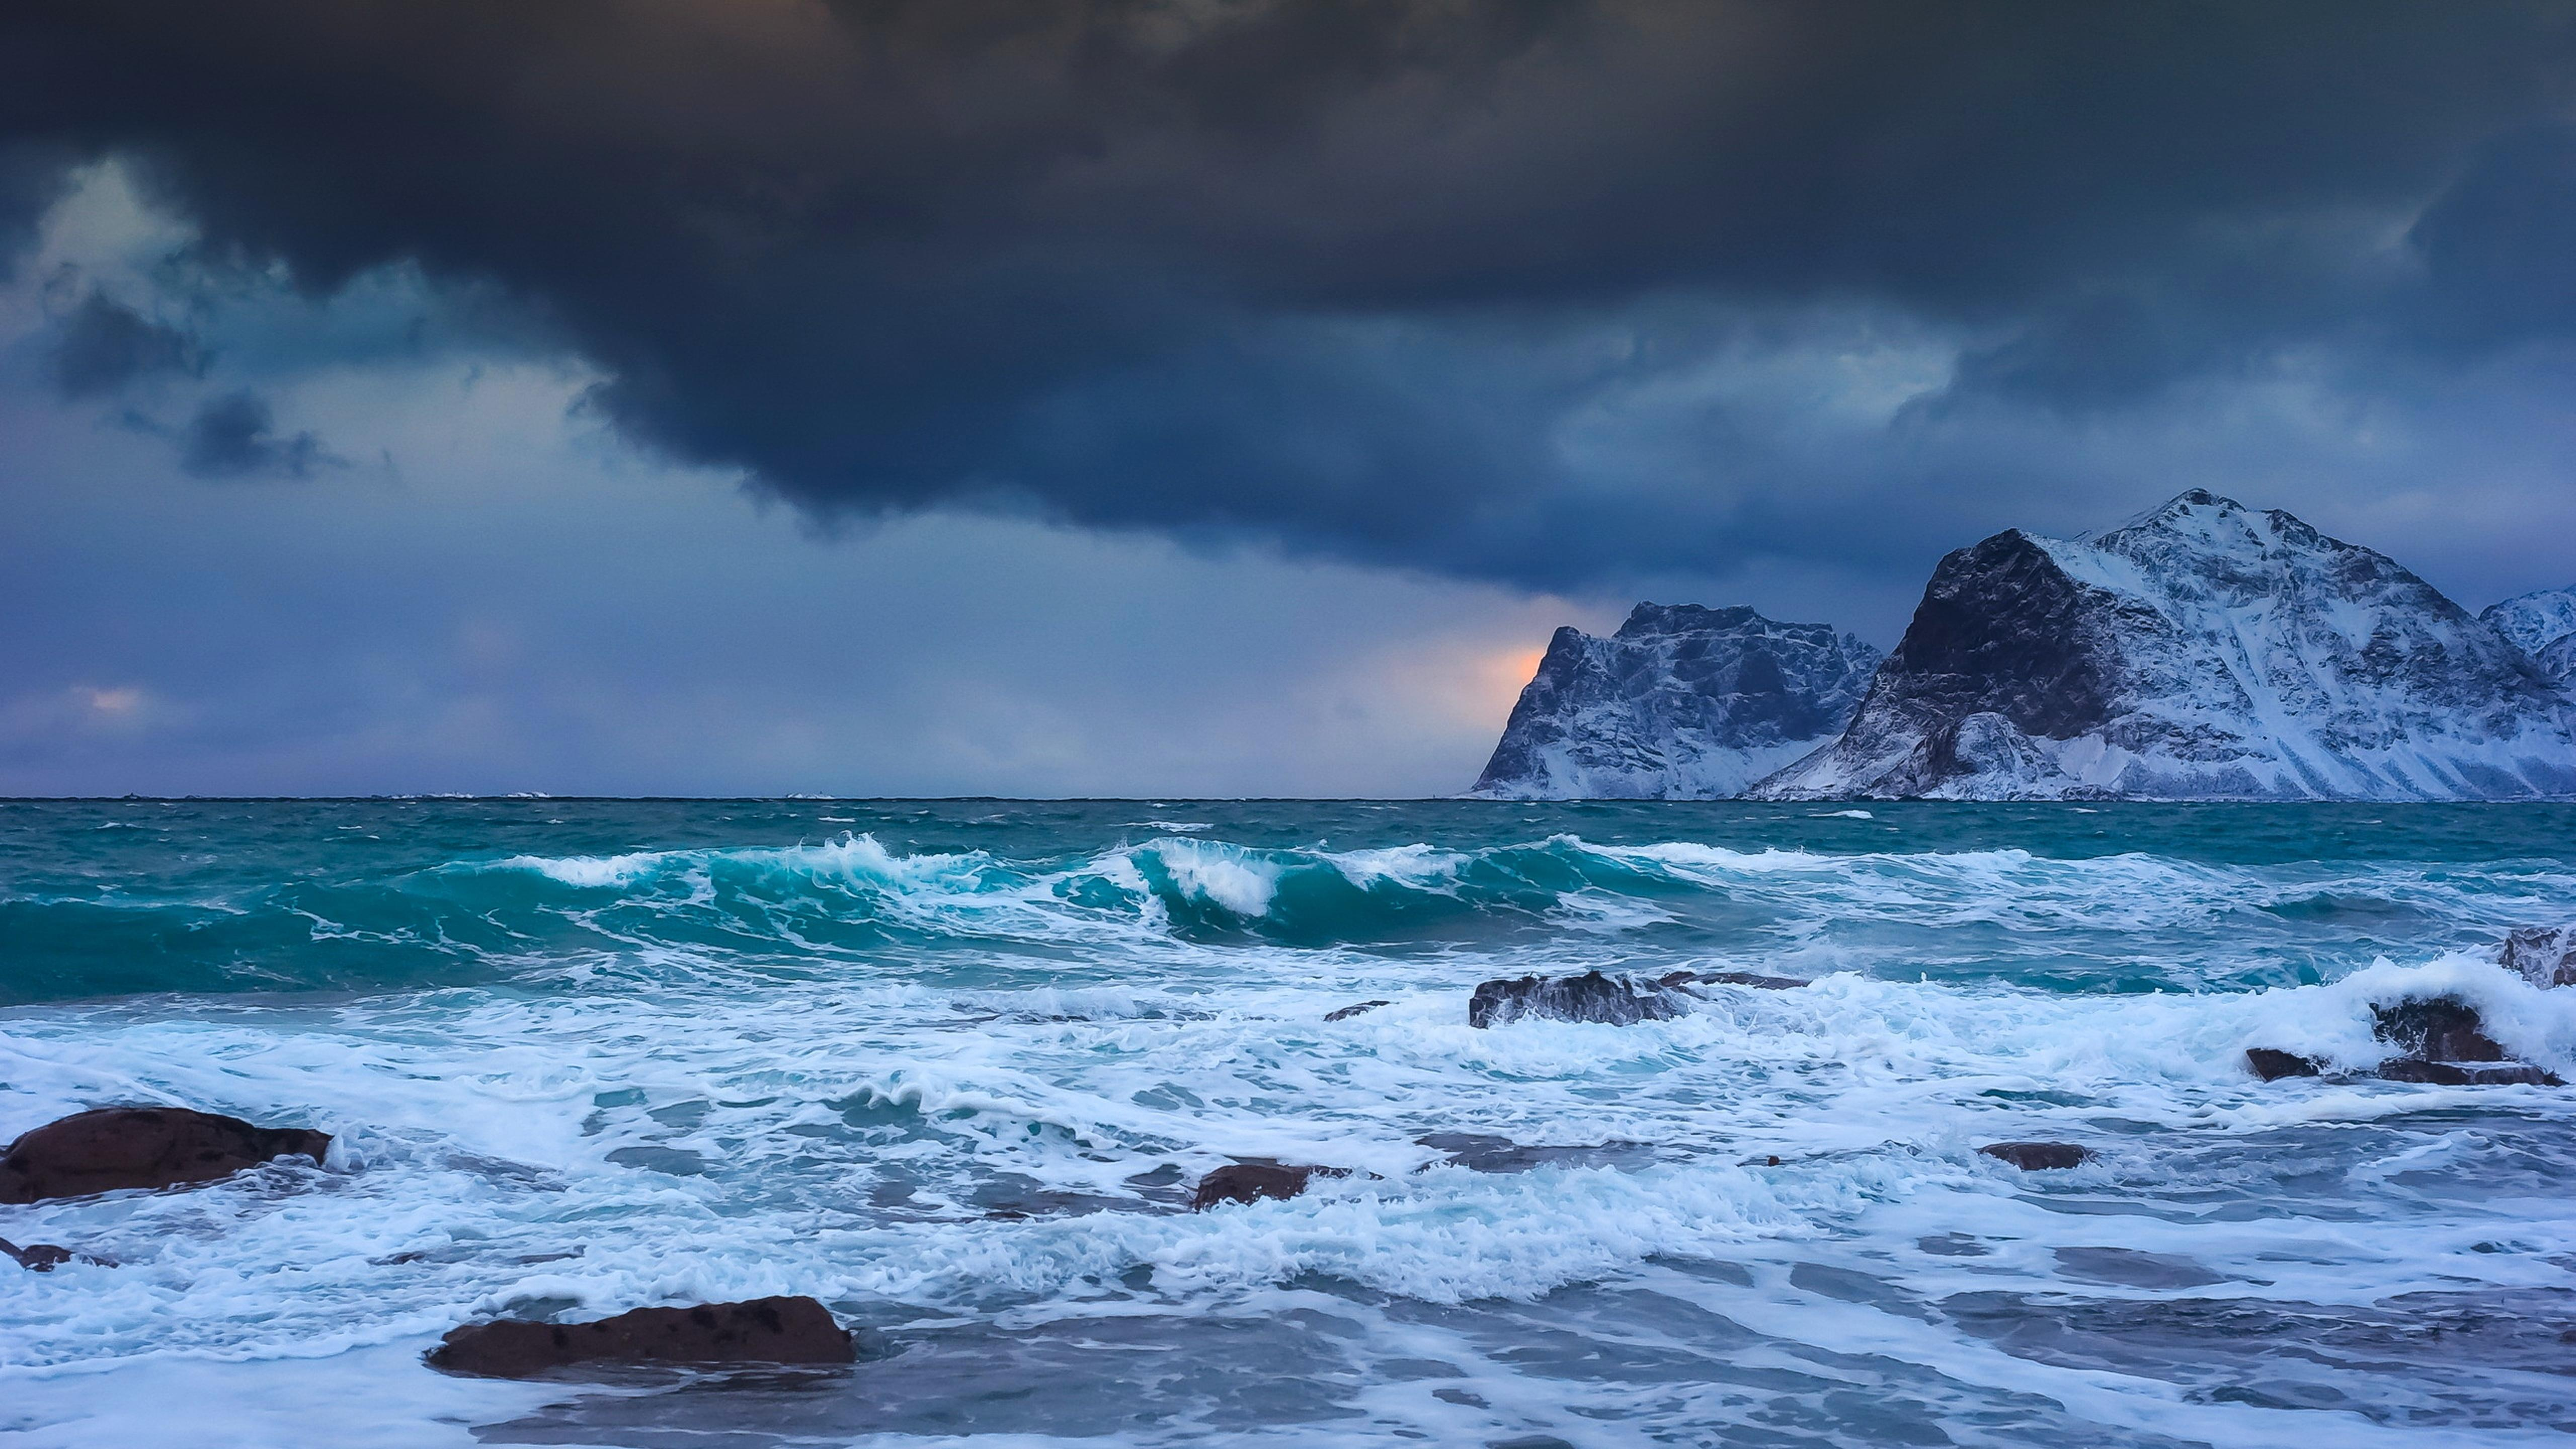 BMW Mountain View Service >> Storm at sea in a cold winter day Wallpaper Download 5120x2880